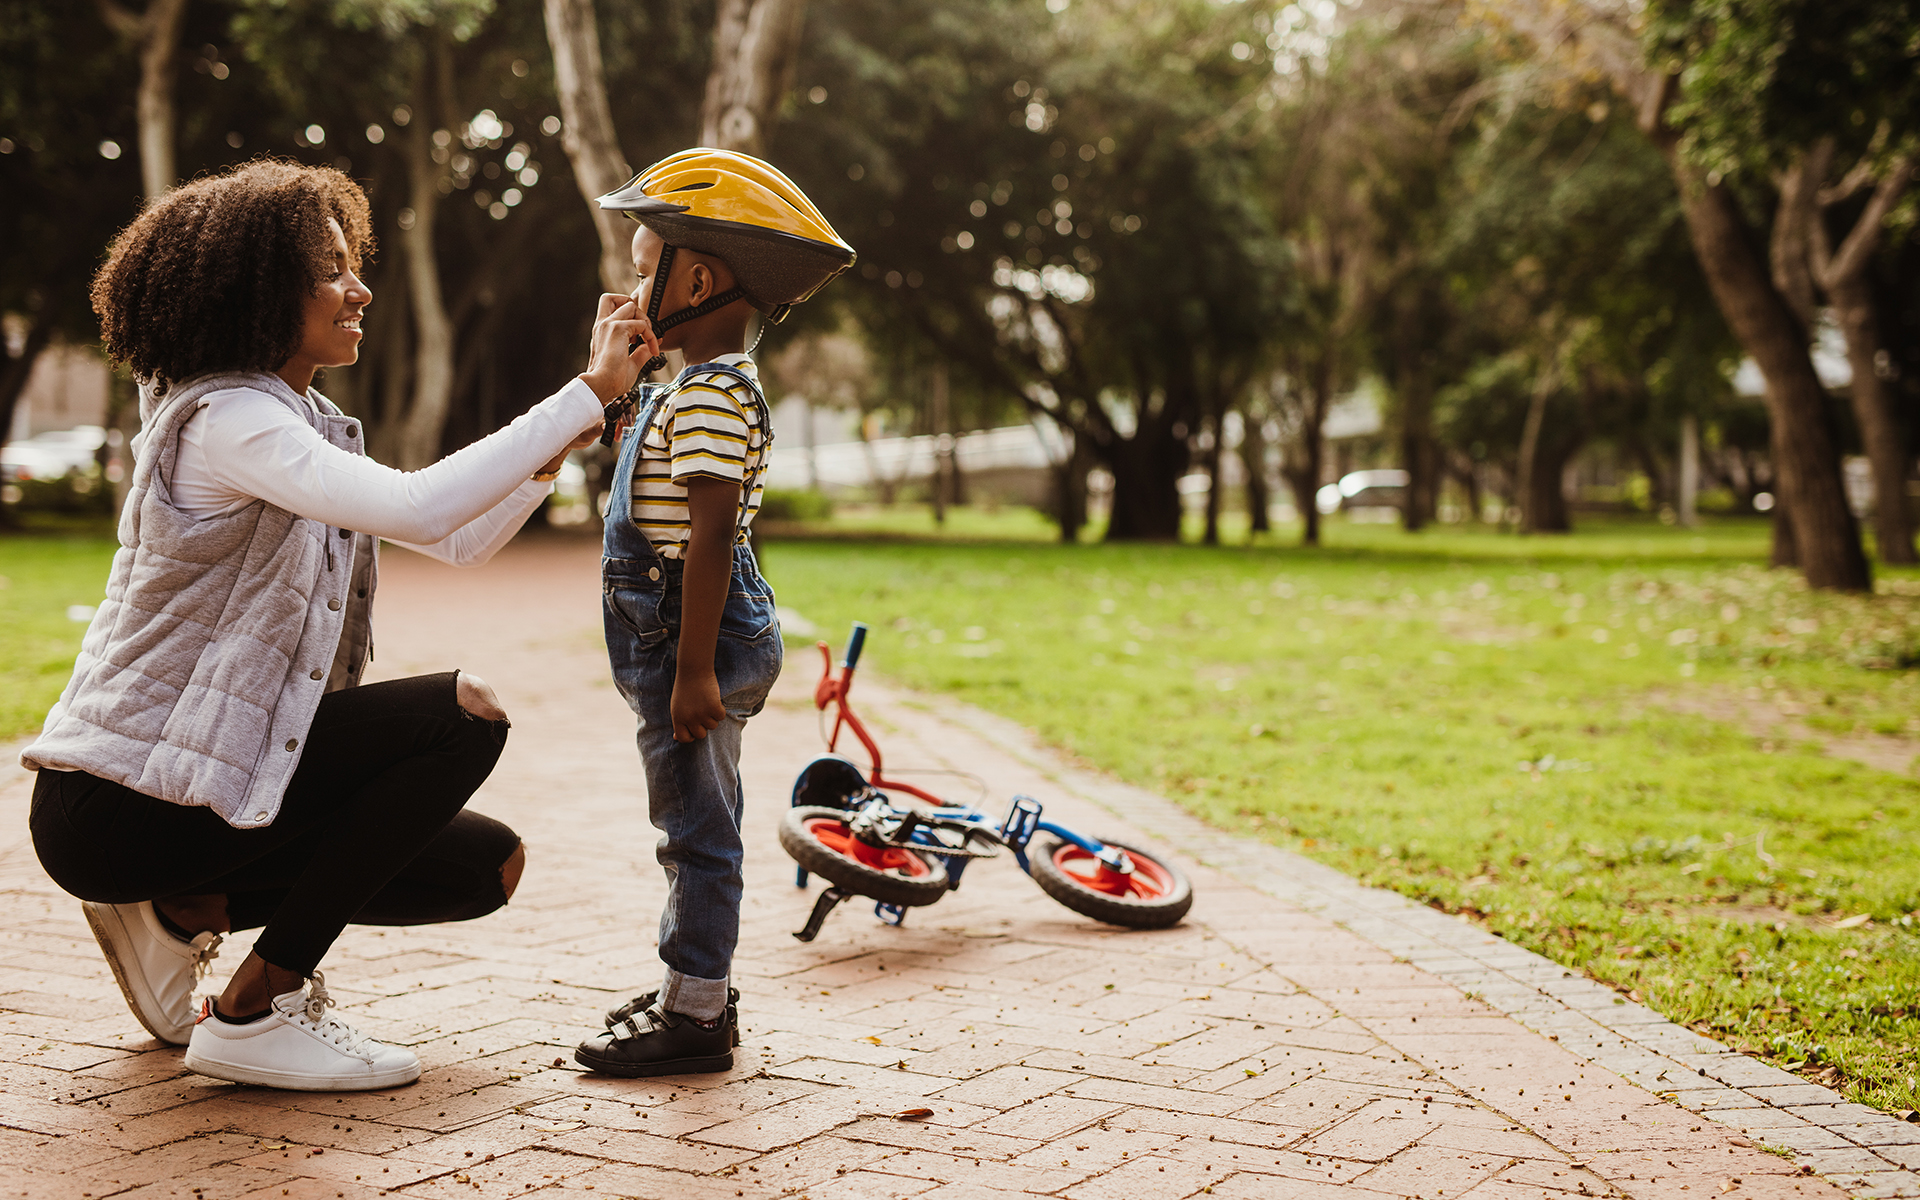 Cultivating courage and confidence in motherhood - Mother helping son wearing helmet for cycling